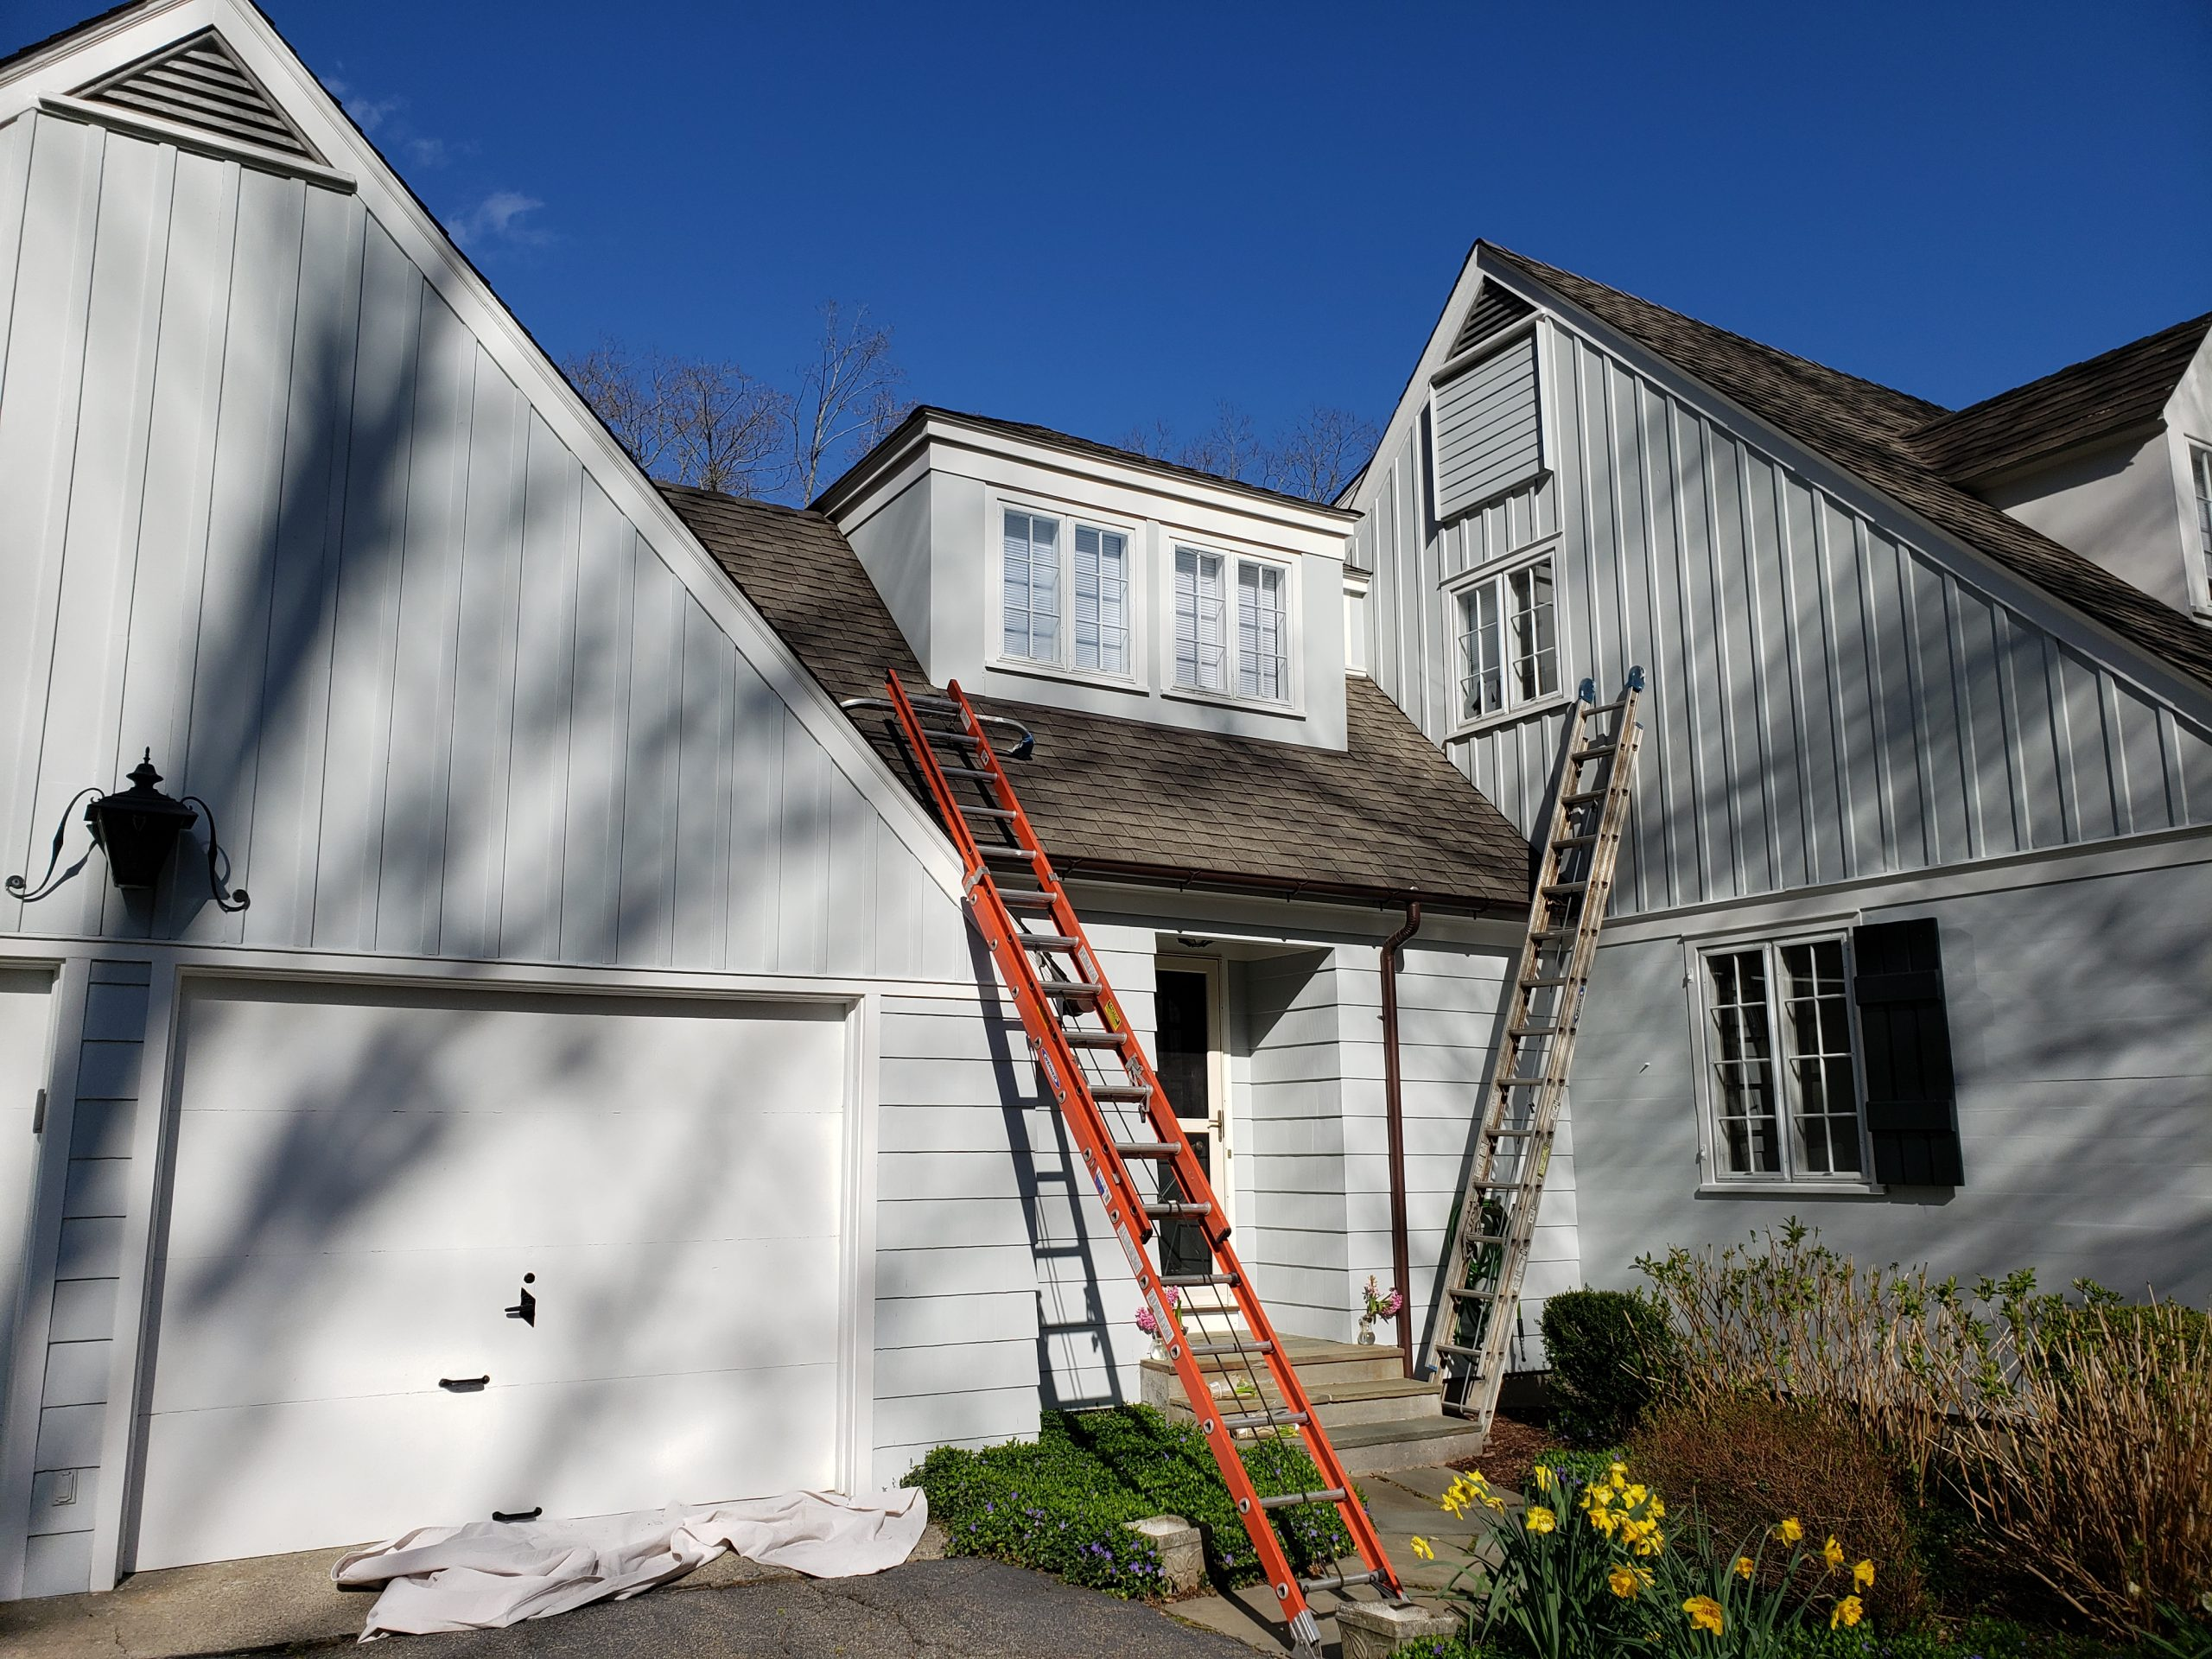 Roof low pressure washing in Easton Connecticut